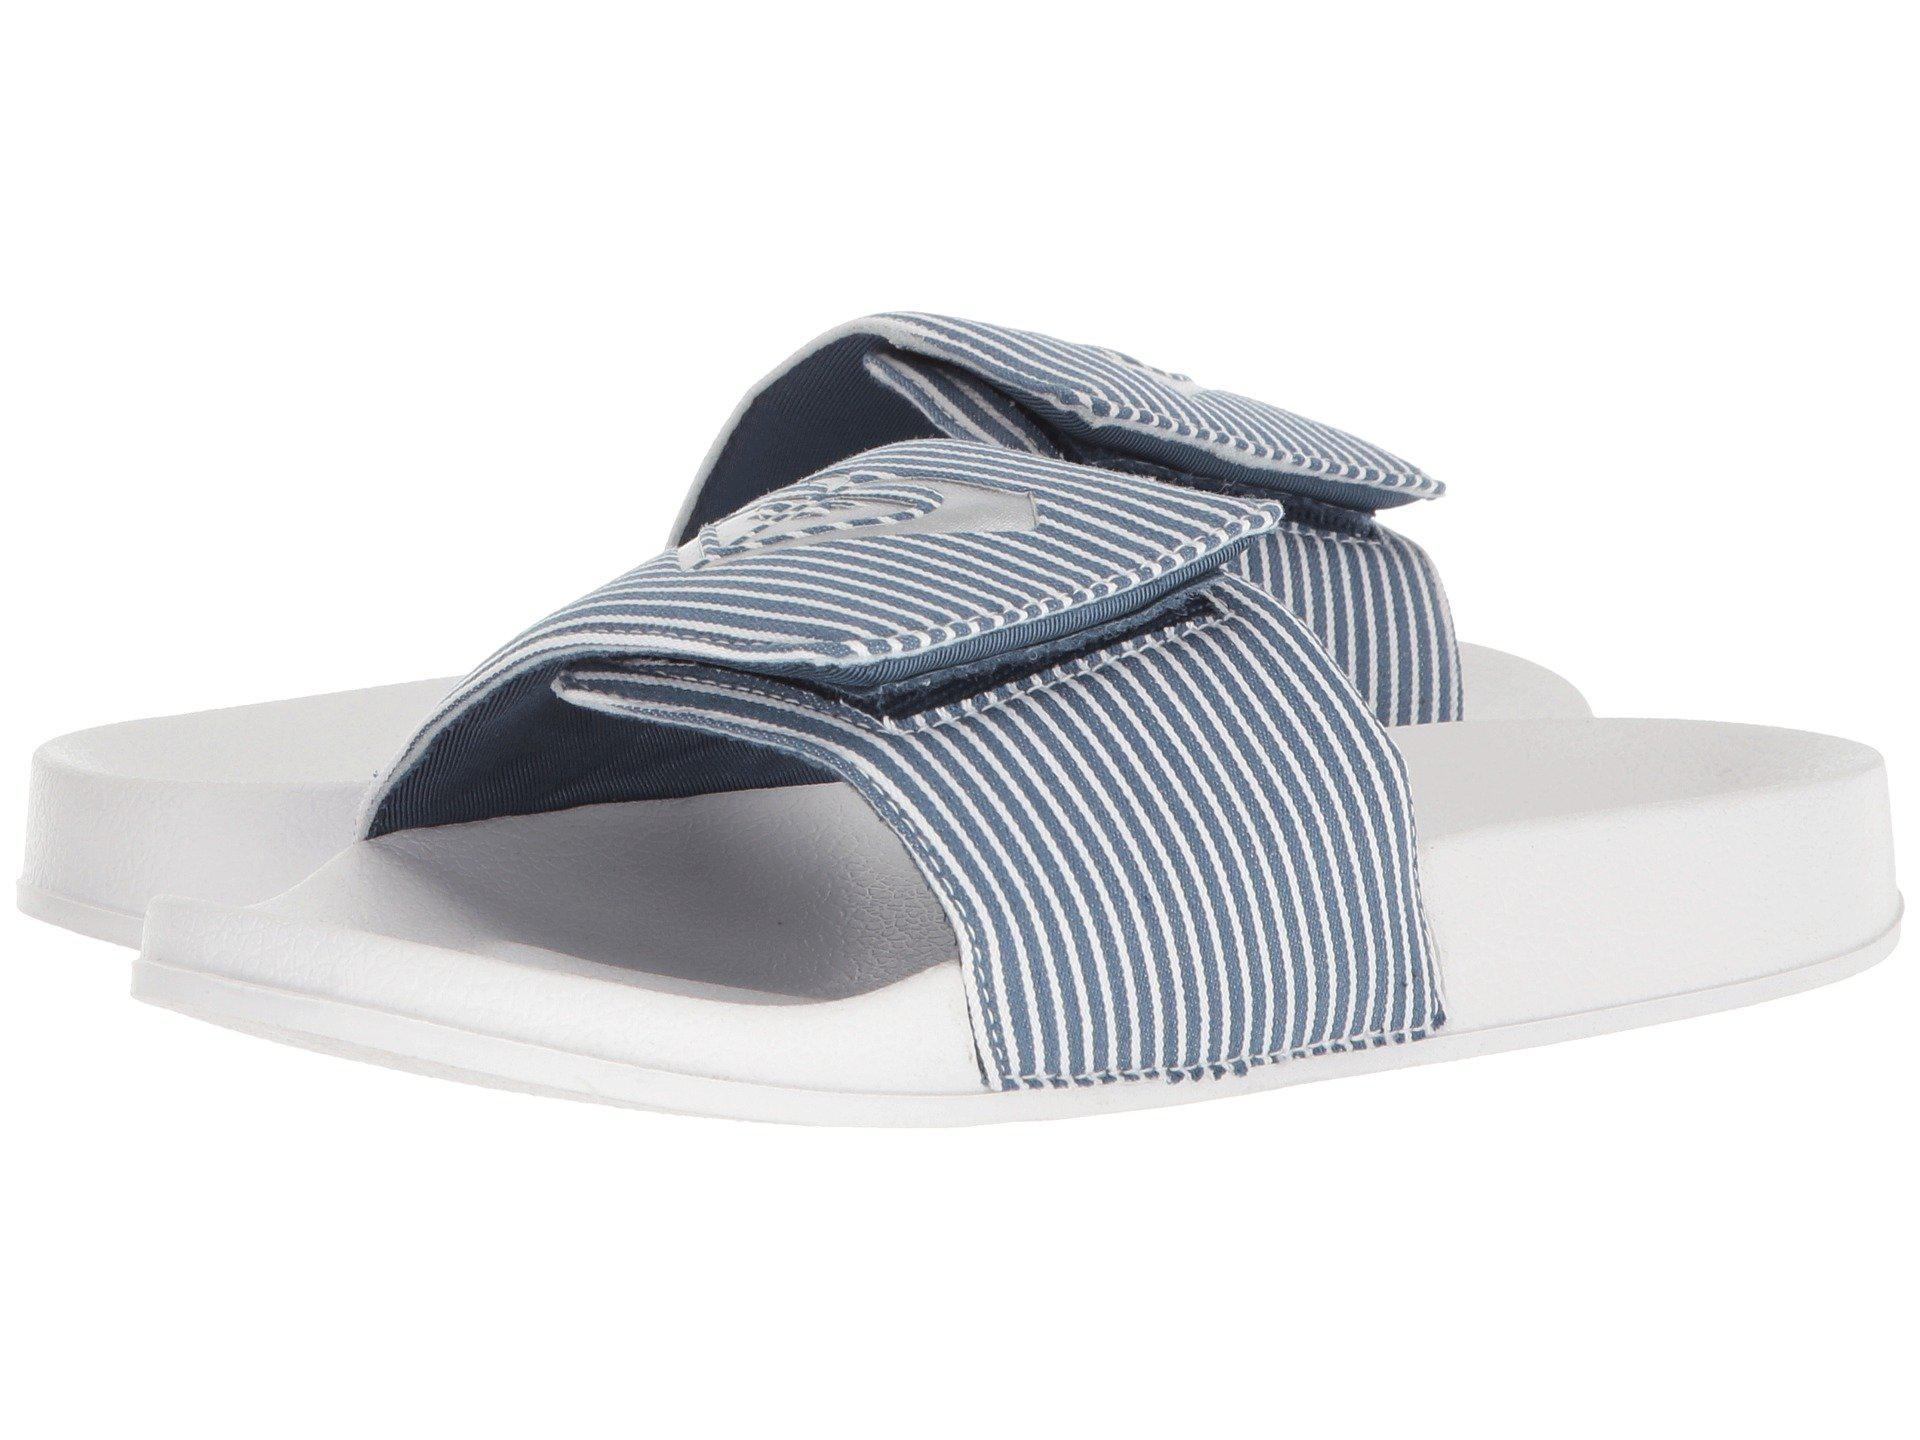 ab81c6619119 Lyst - Roxy Slippy Textile (grey) Women s Slide Shoes in Blue